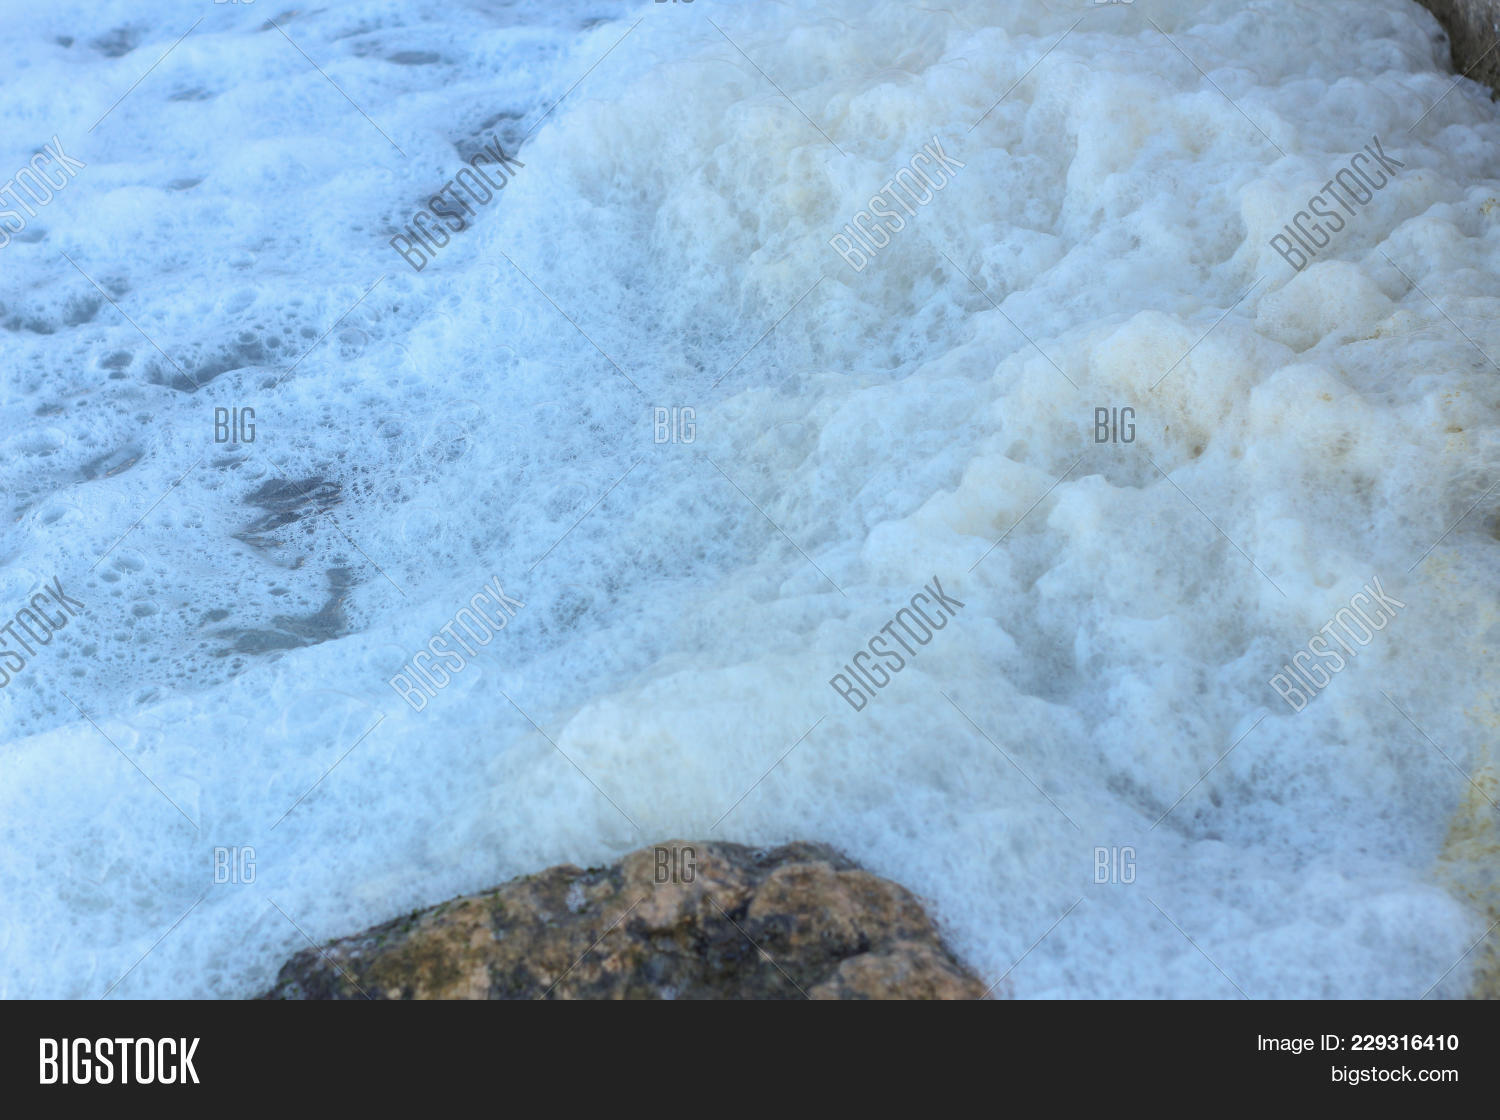 Water Pollution Caused Image & Photo (Free Trial) | Bigstock